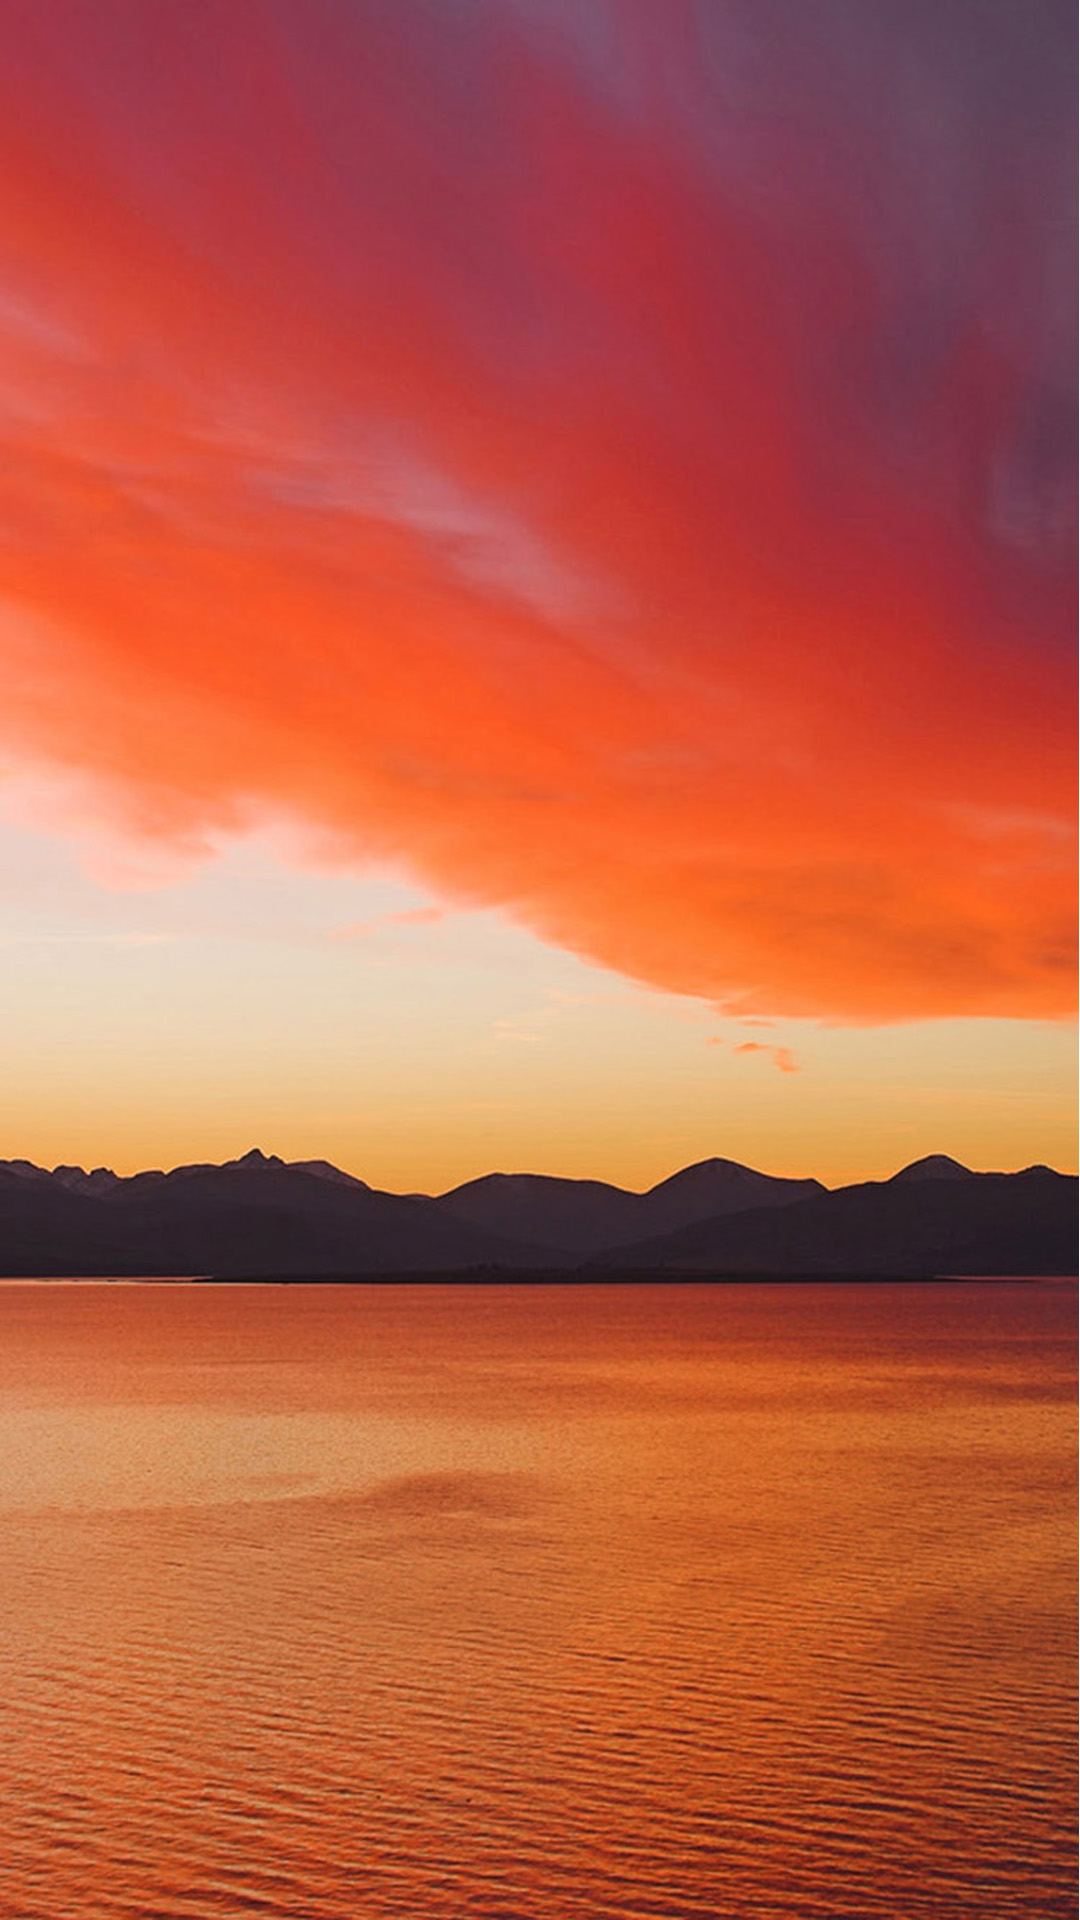 Sunset over the Cuillin Mountains on the Isle of Skye from Kyle of Lochalsh. Android wallpaper